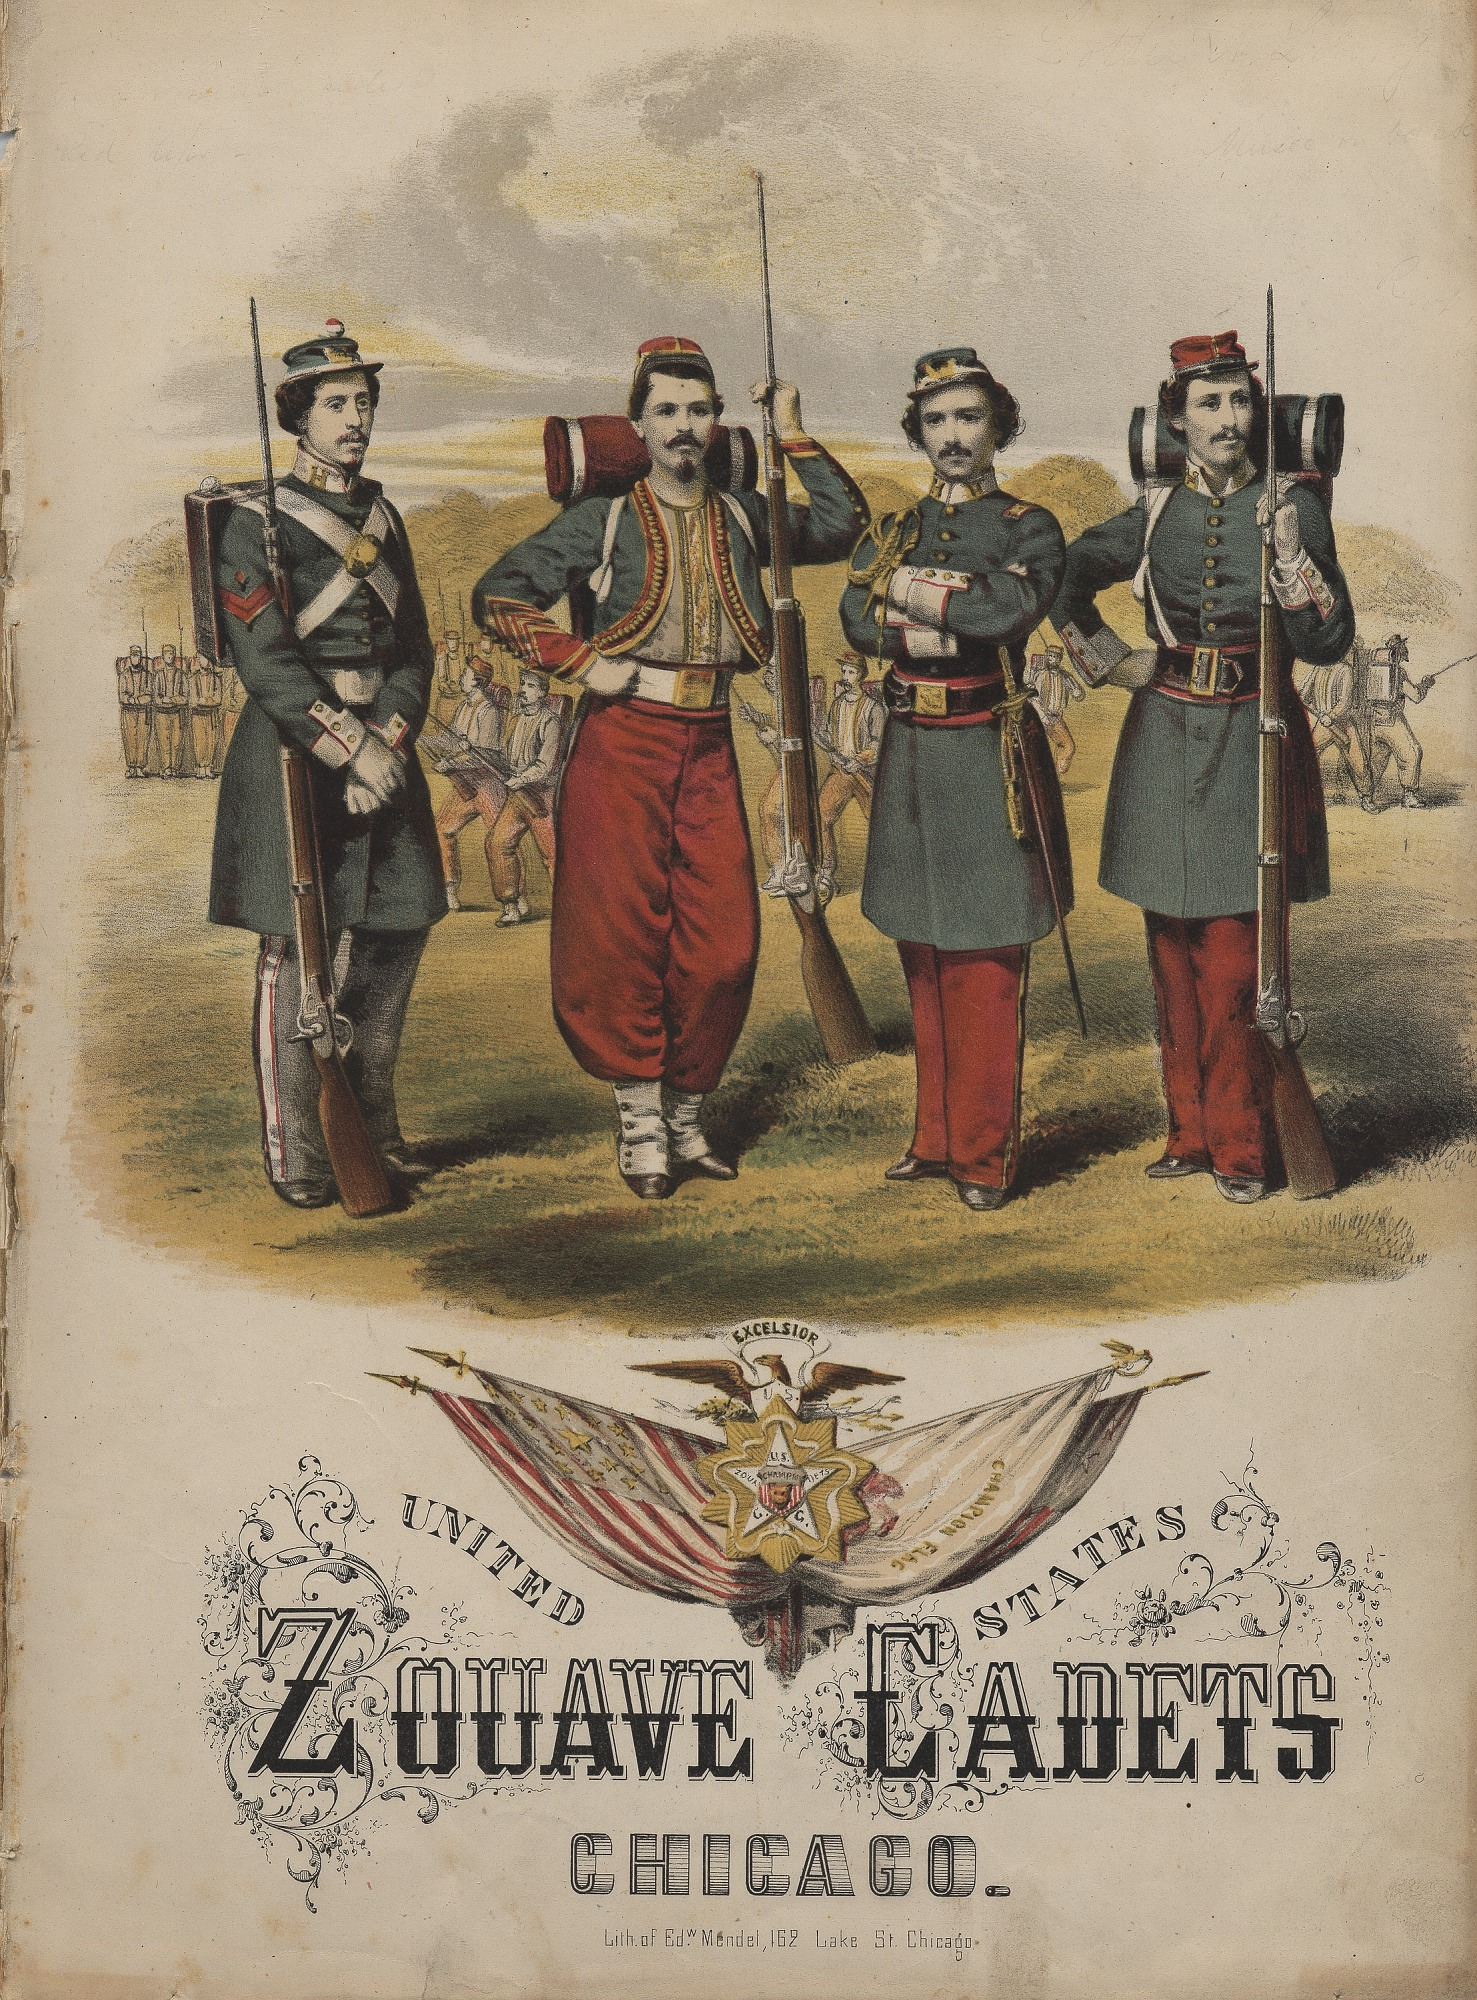 images for United States Zouave Cadets sheet music